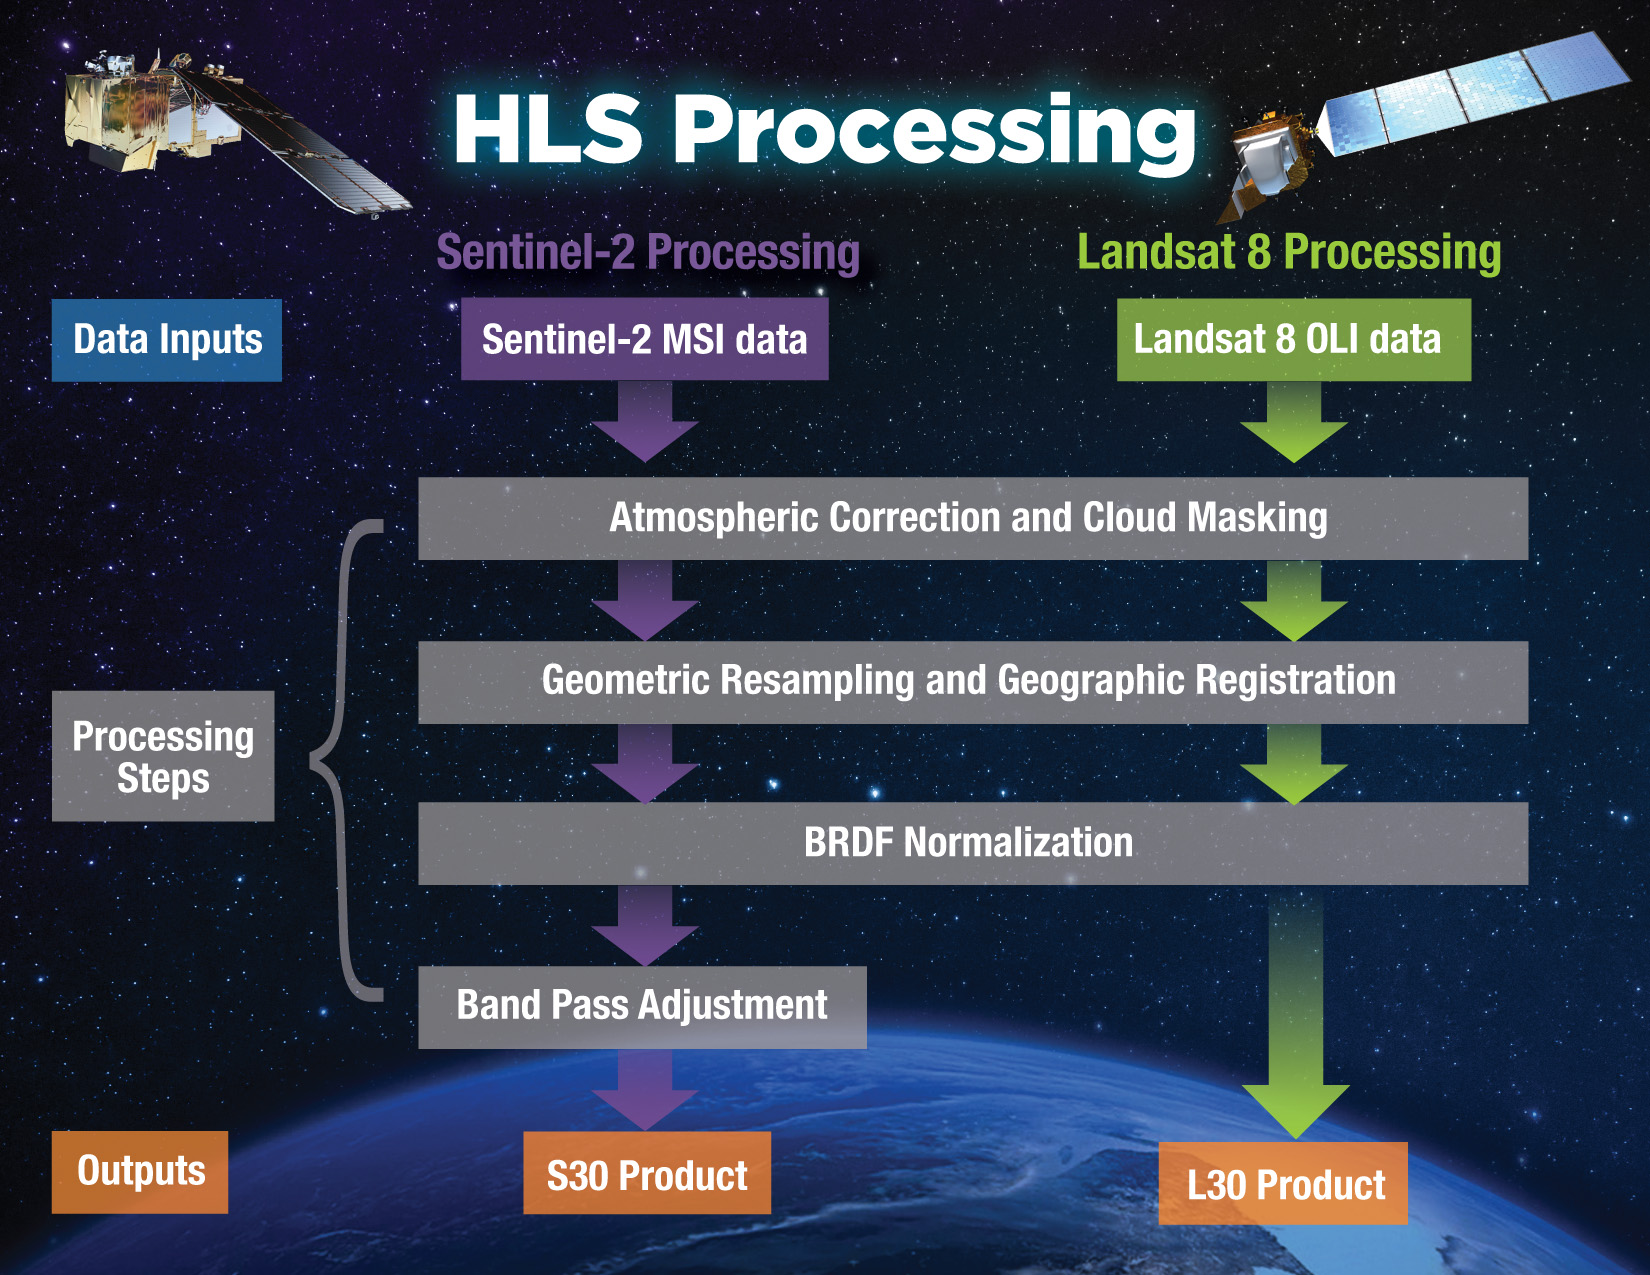 HLS processing workflow.